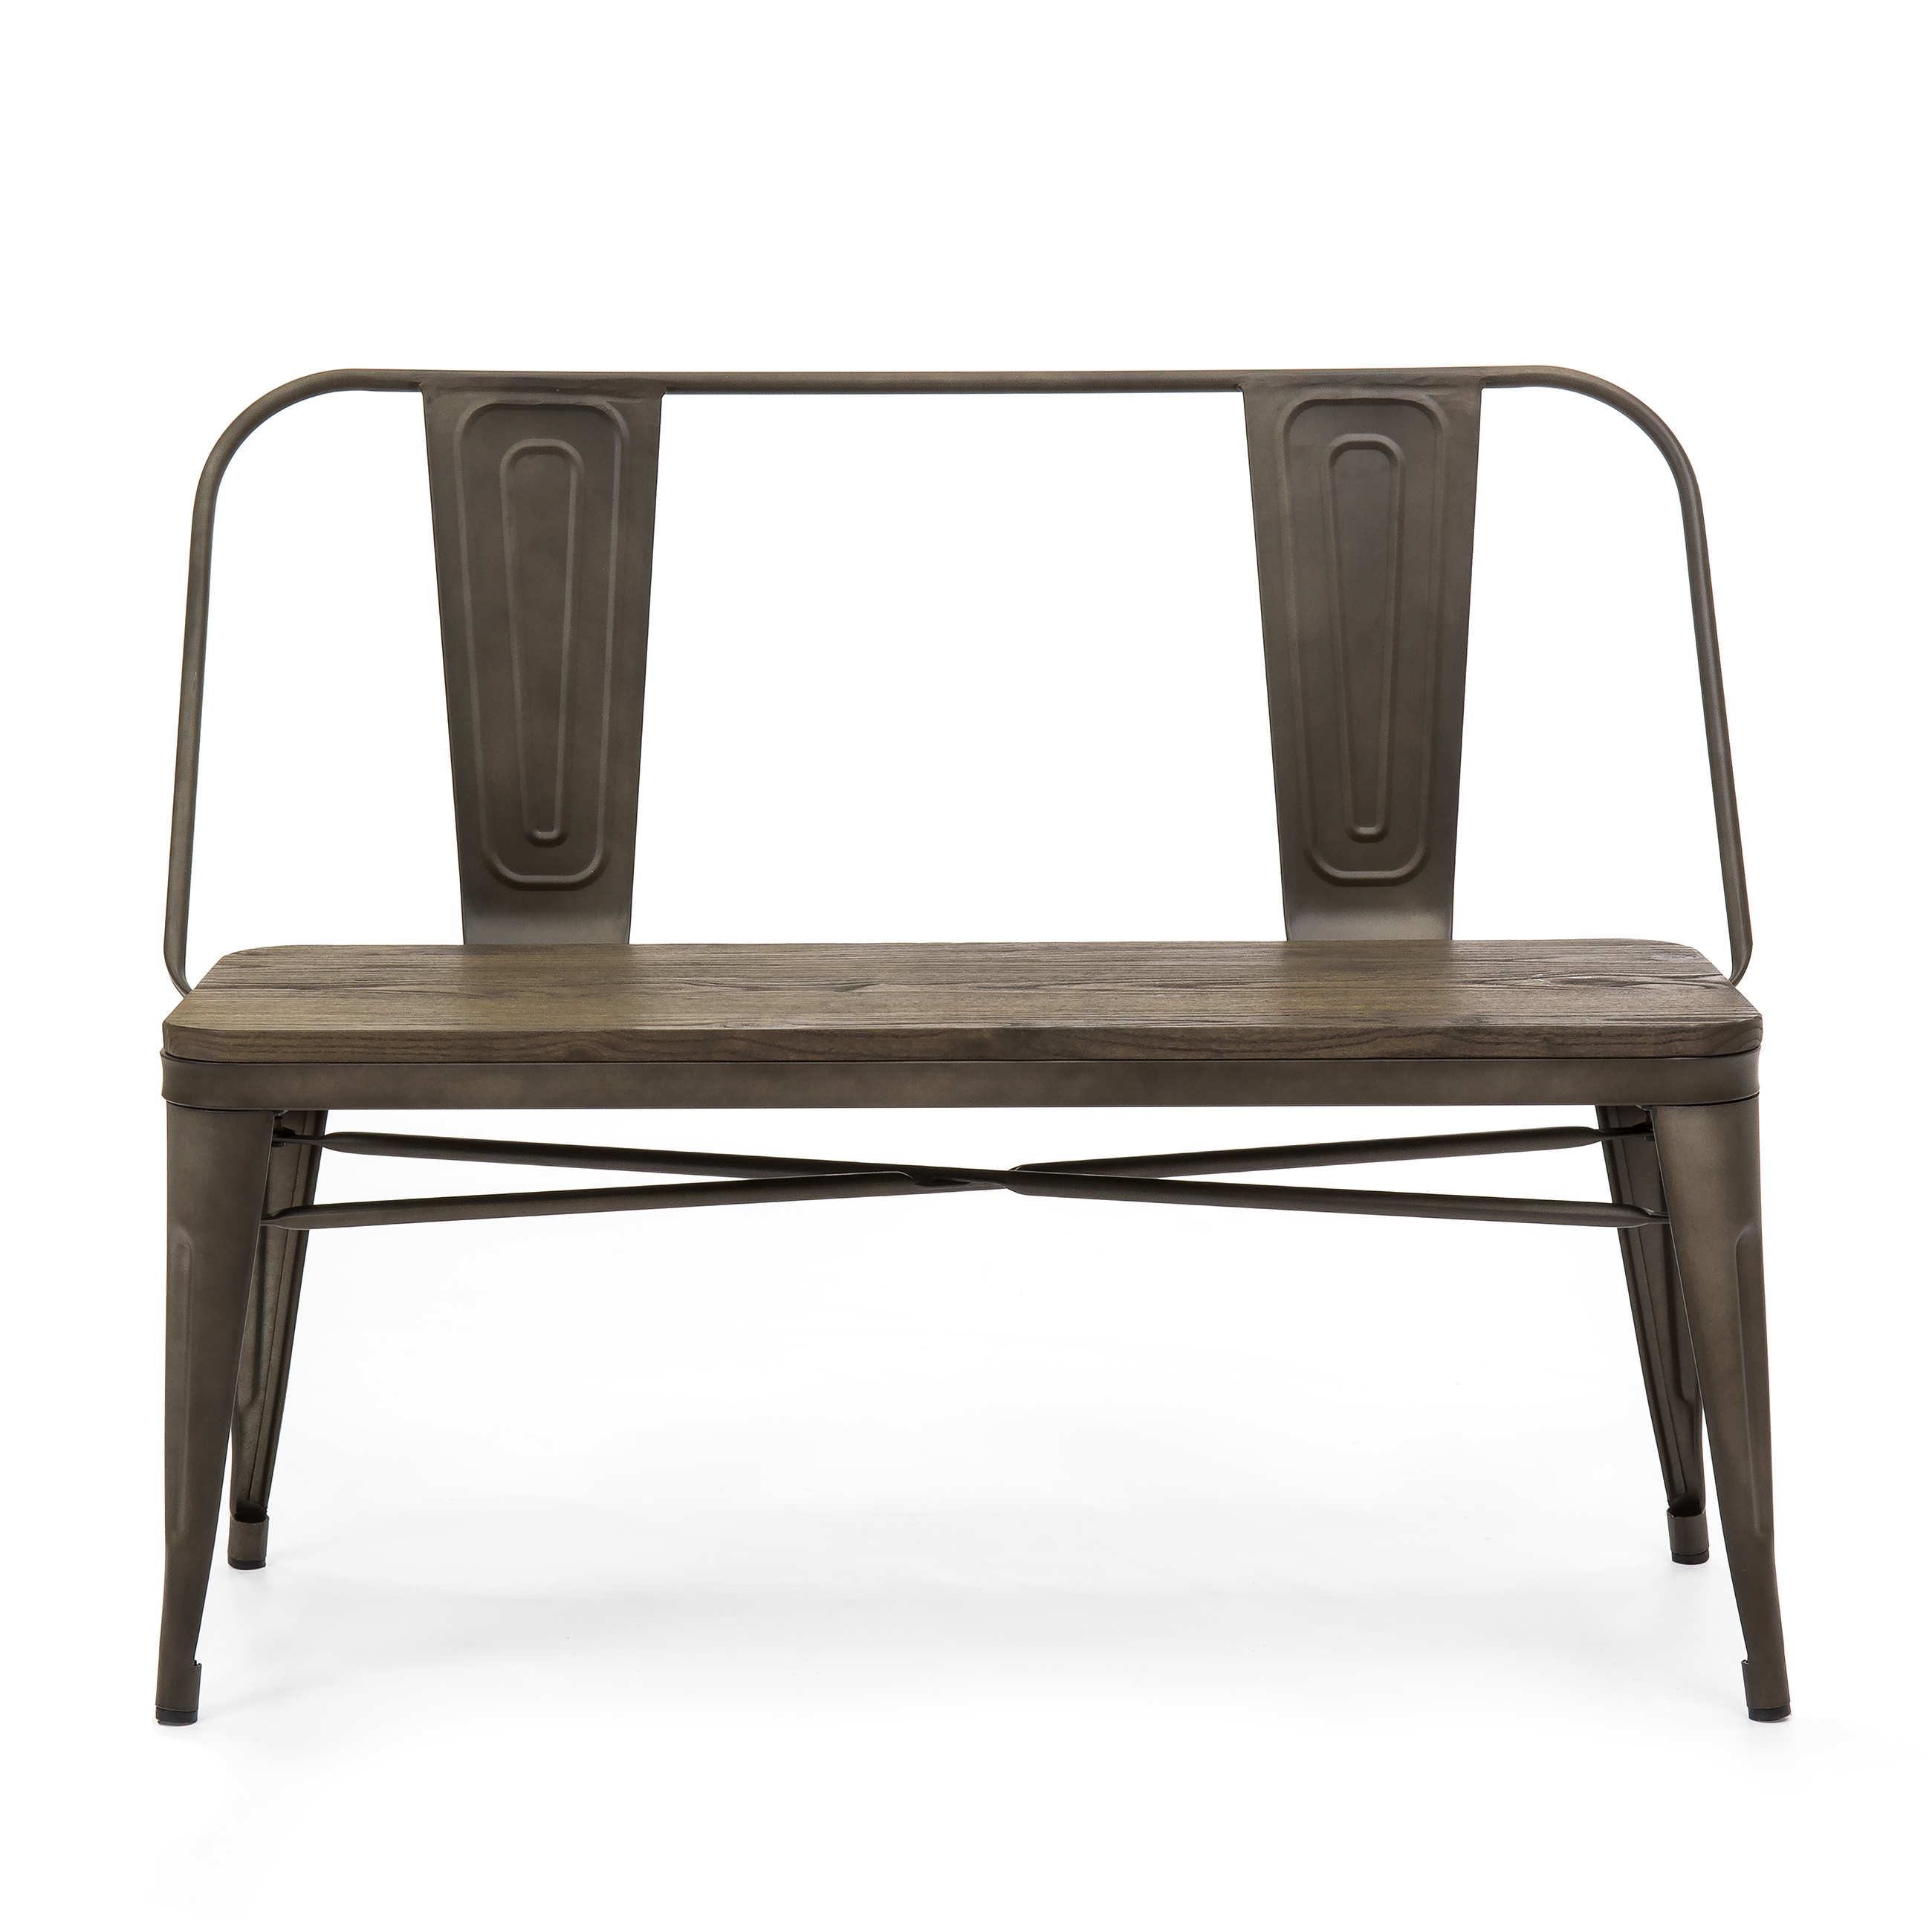 Exceptionnel Best Choice Products Mid Century Industrial Metal Dining Bench W/ Wood  Seat, Floor Protectors (Espresso)